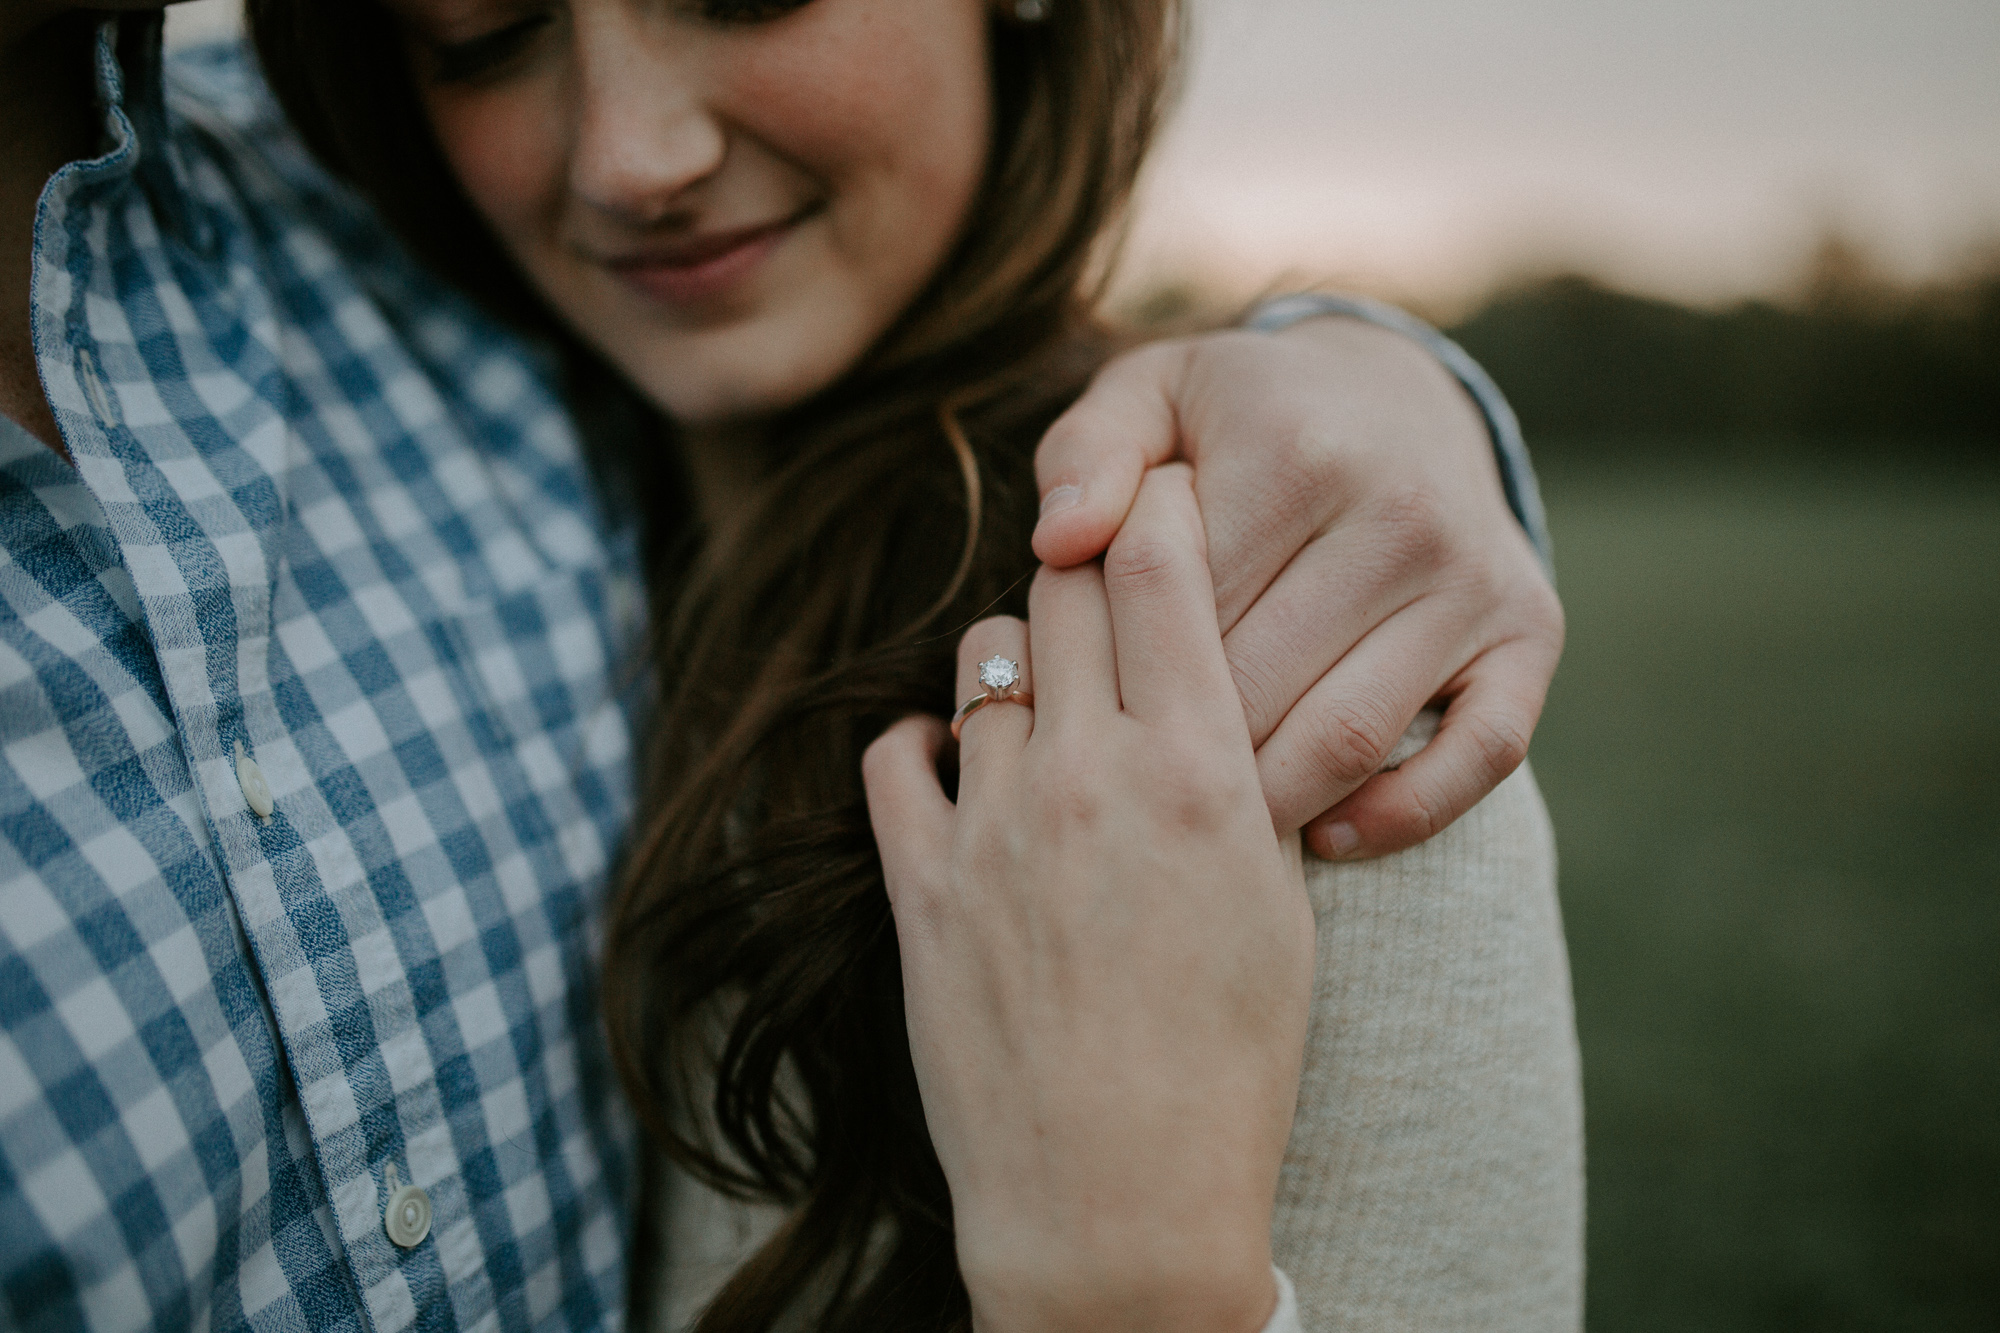 champaign_il_engagement_photography-0159.jpg